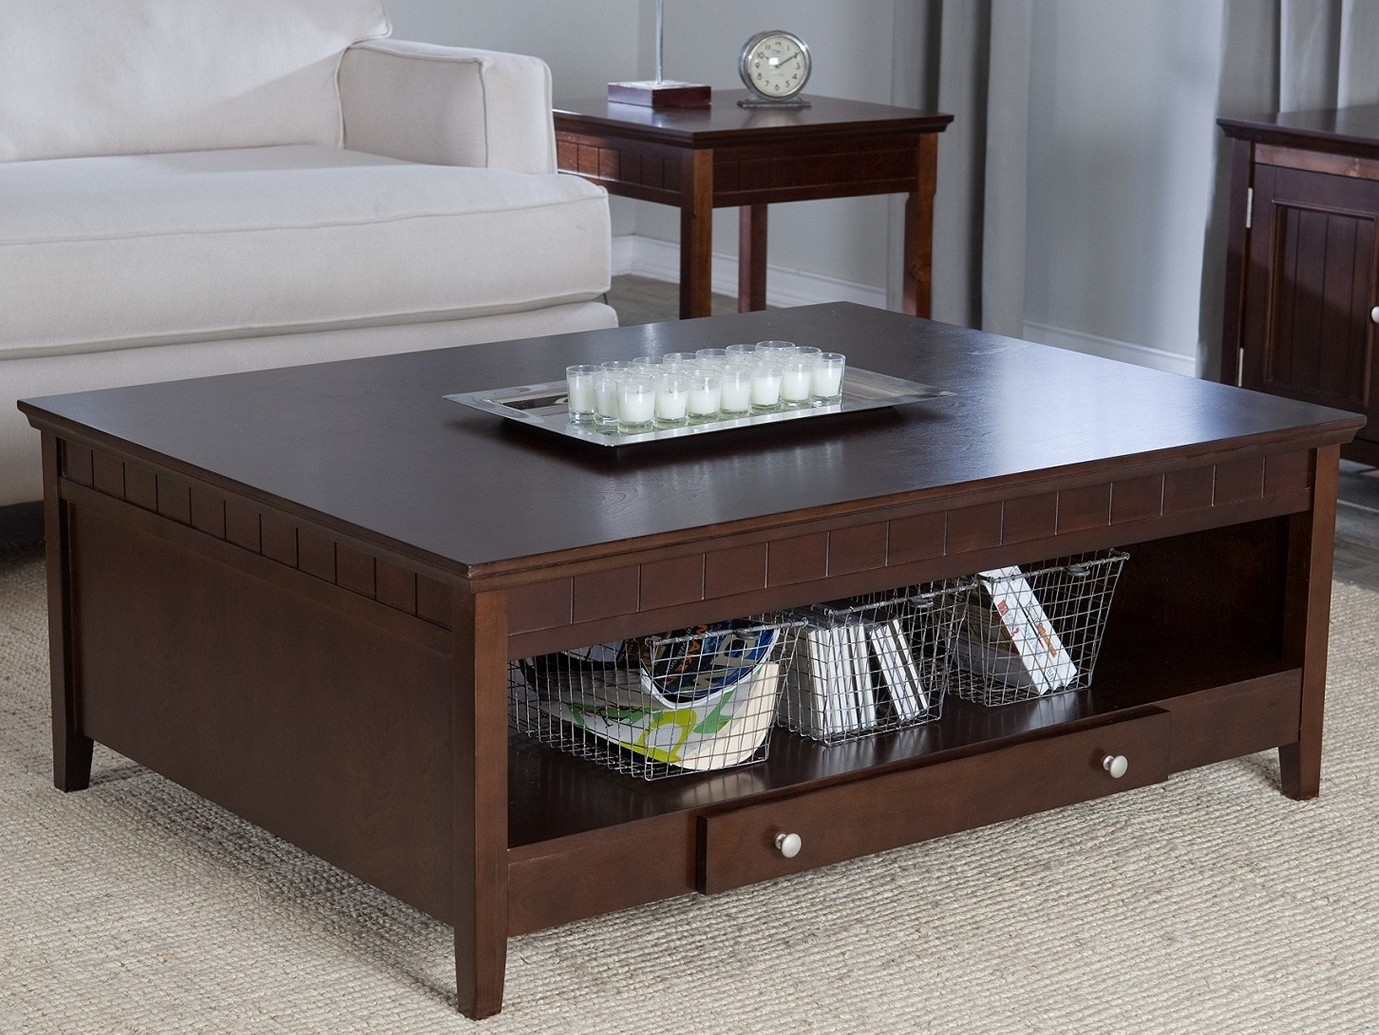 Espresso Coffee Table Design Images Photos Pictures